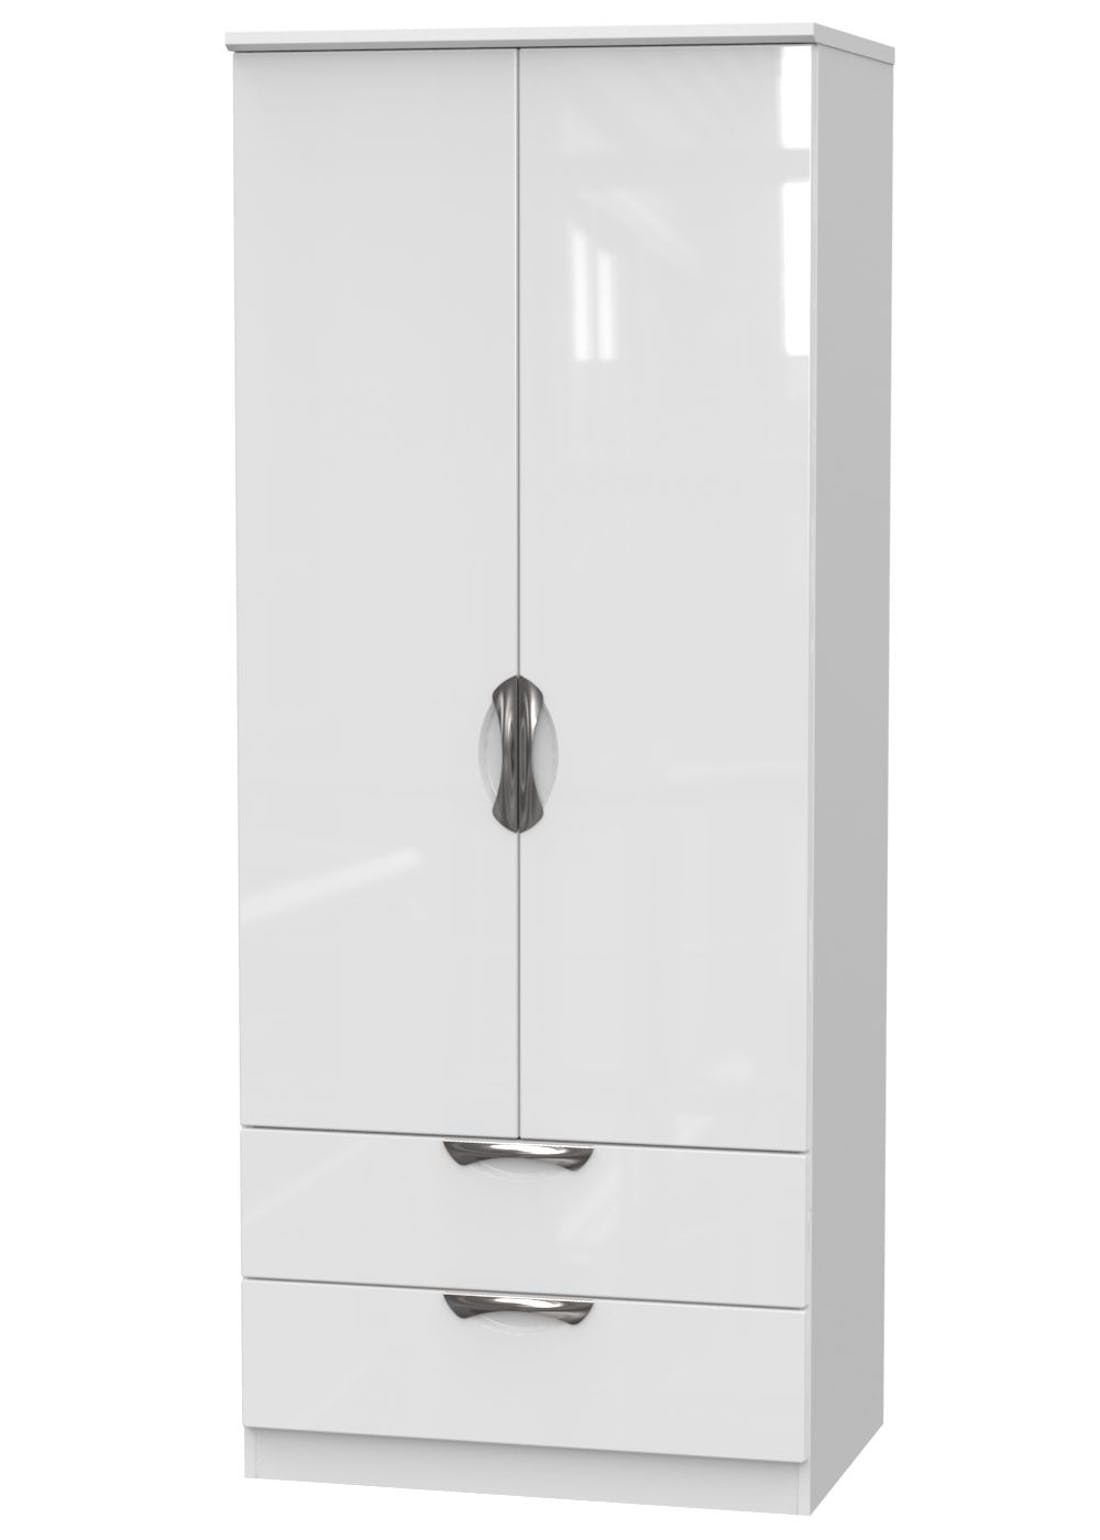 Swift Bordeaux 2 Door 2 Drawer Wardrobe (182.5cm x 74cm x 53cm)